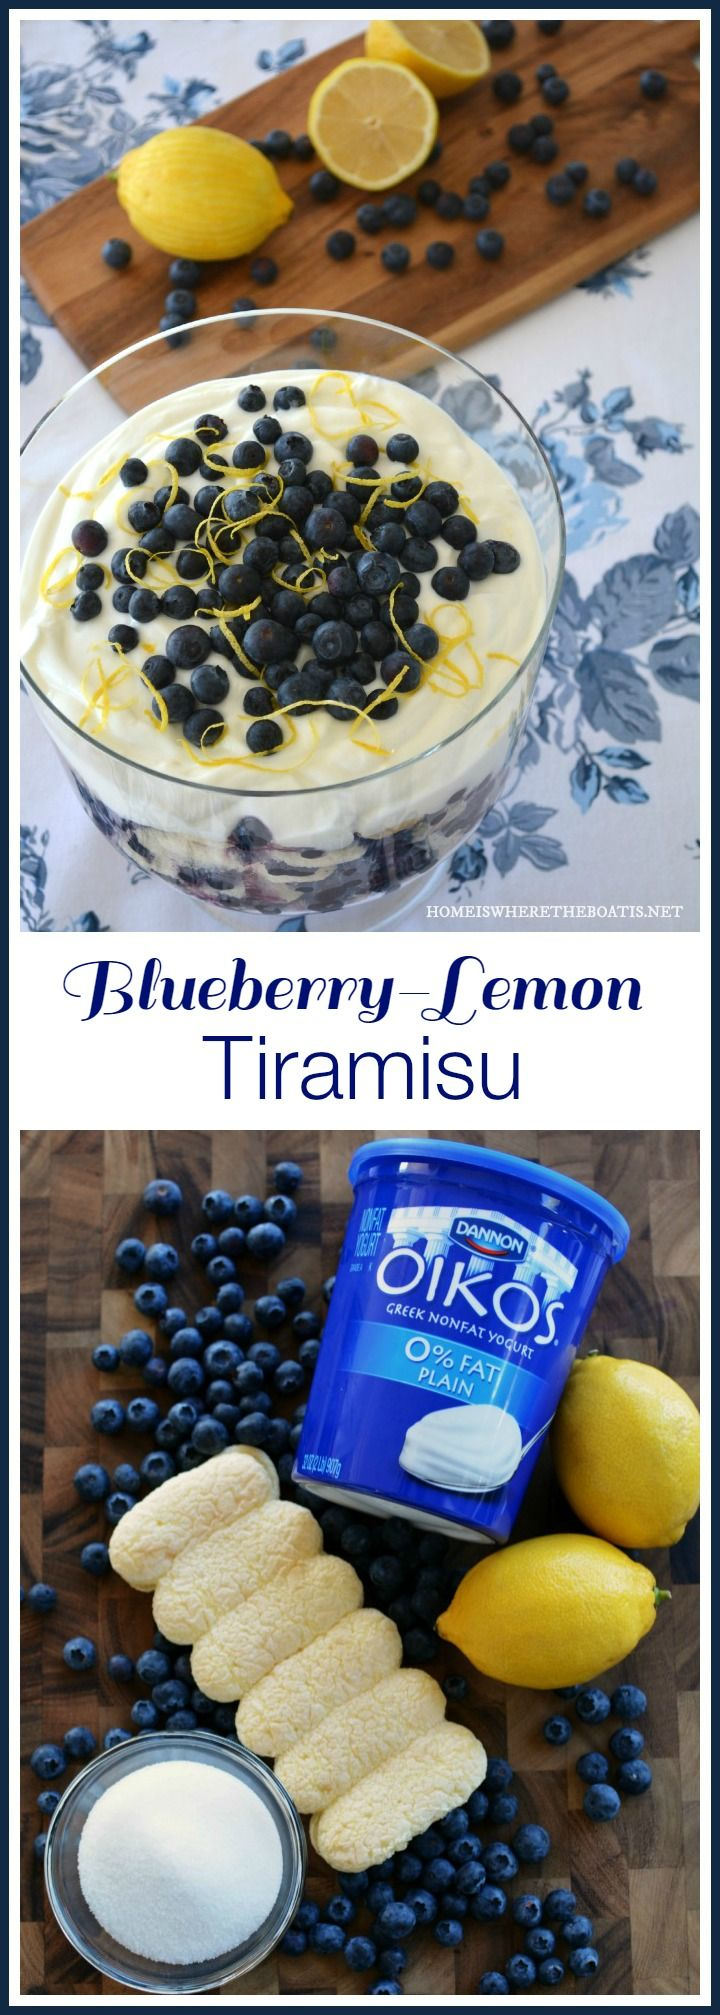 Blueberry-Lemon Tiramisu is a twist on tiramisu starring blueberries as a heart-smart ingredient! Nonfat Greek yogurt takes the place of the traditional ingredients of heavy cream, egg yolks, and mascarpone cheese, resulting in a healthier, light and summery dessert. | Home is Where the Boat Is